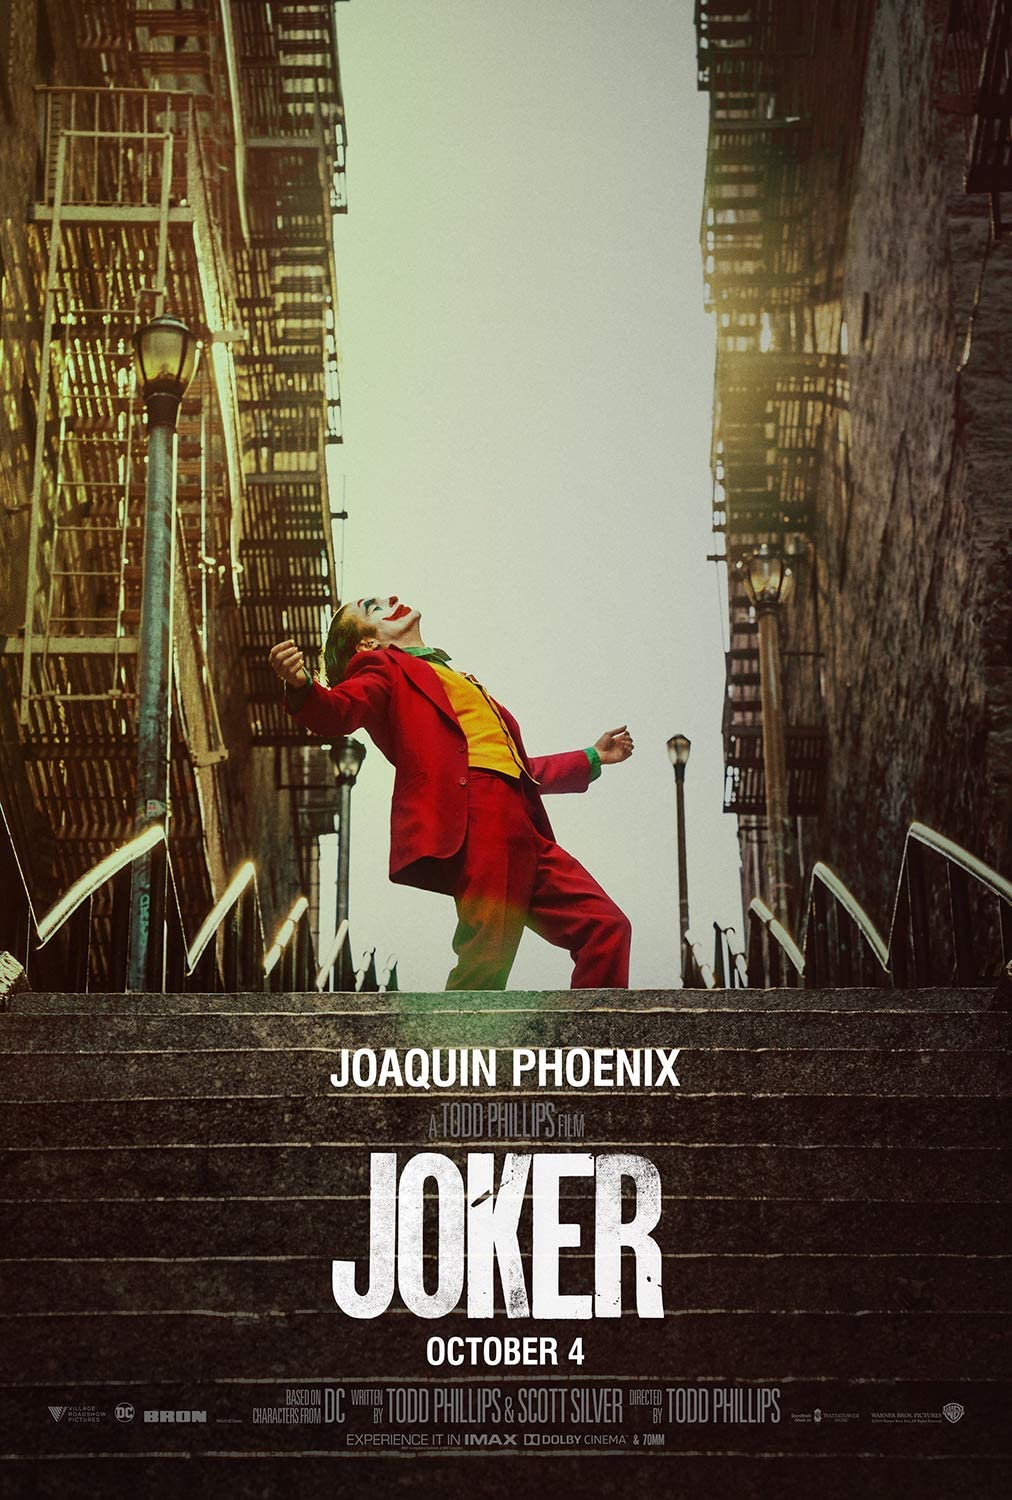 Rock-Poster Joker (2019 Film) Movie Poster and Prints Unframed Wall Art Gifts Decor 16x25 Poster 1